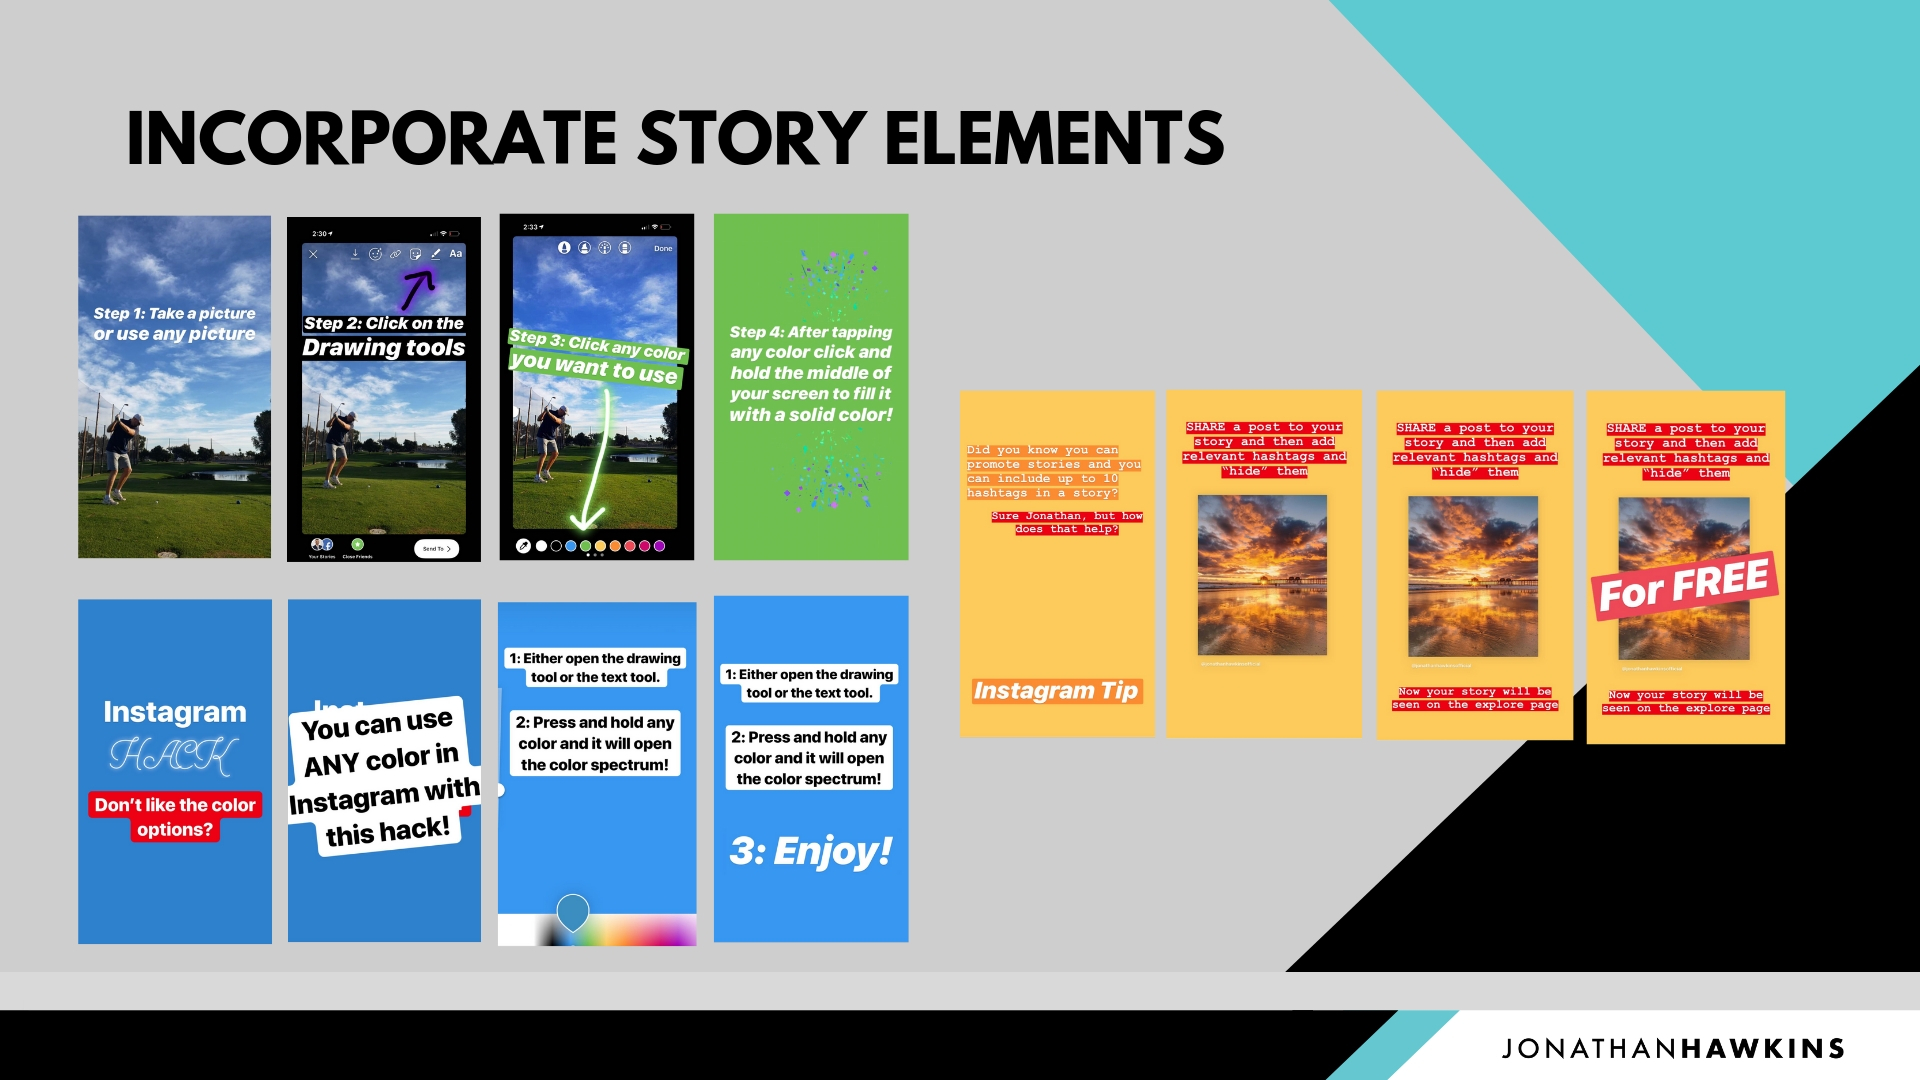 Incorporate Story Elements.jpg